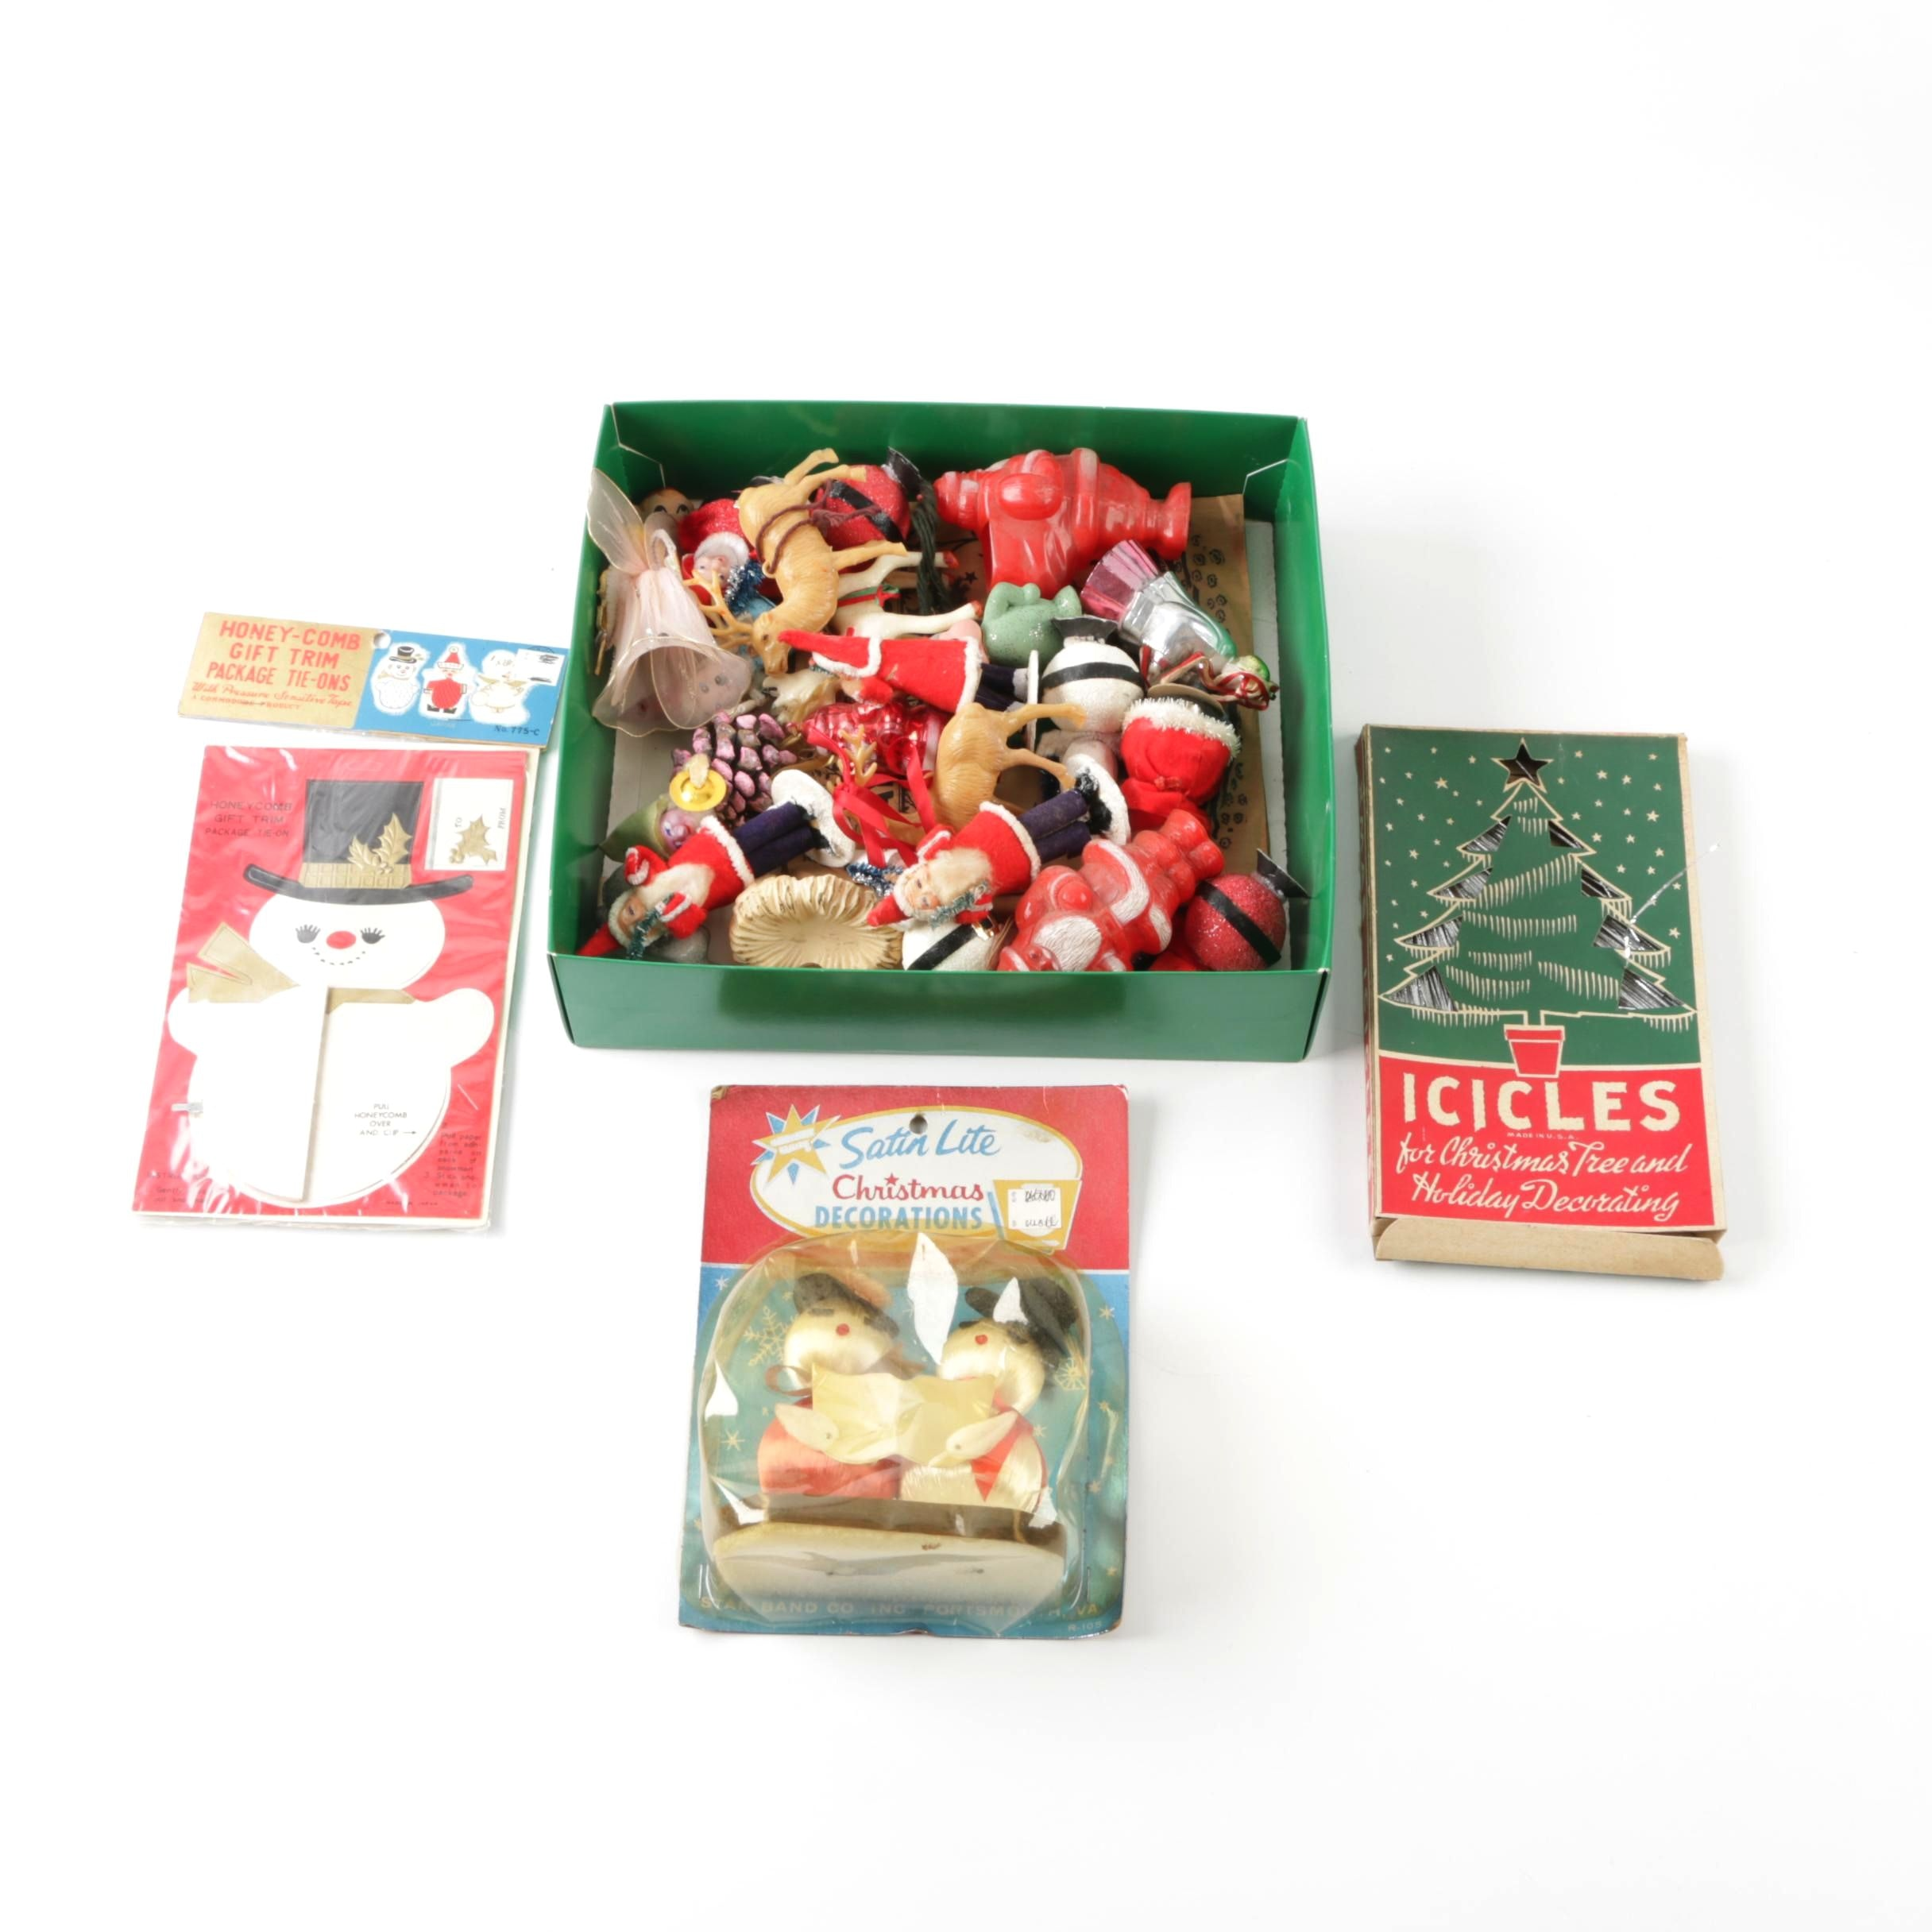 Vintage Christmas Ornaments, Figurines and Icicles